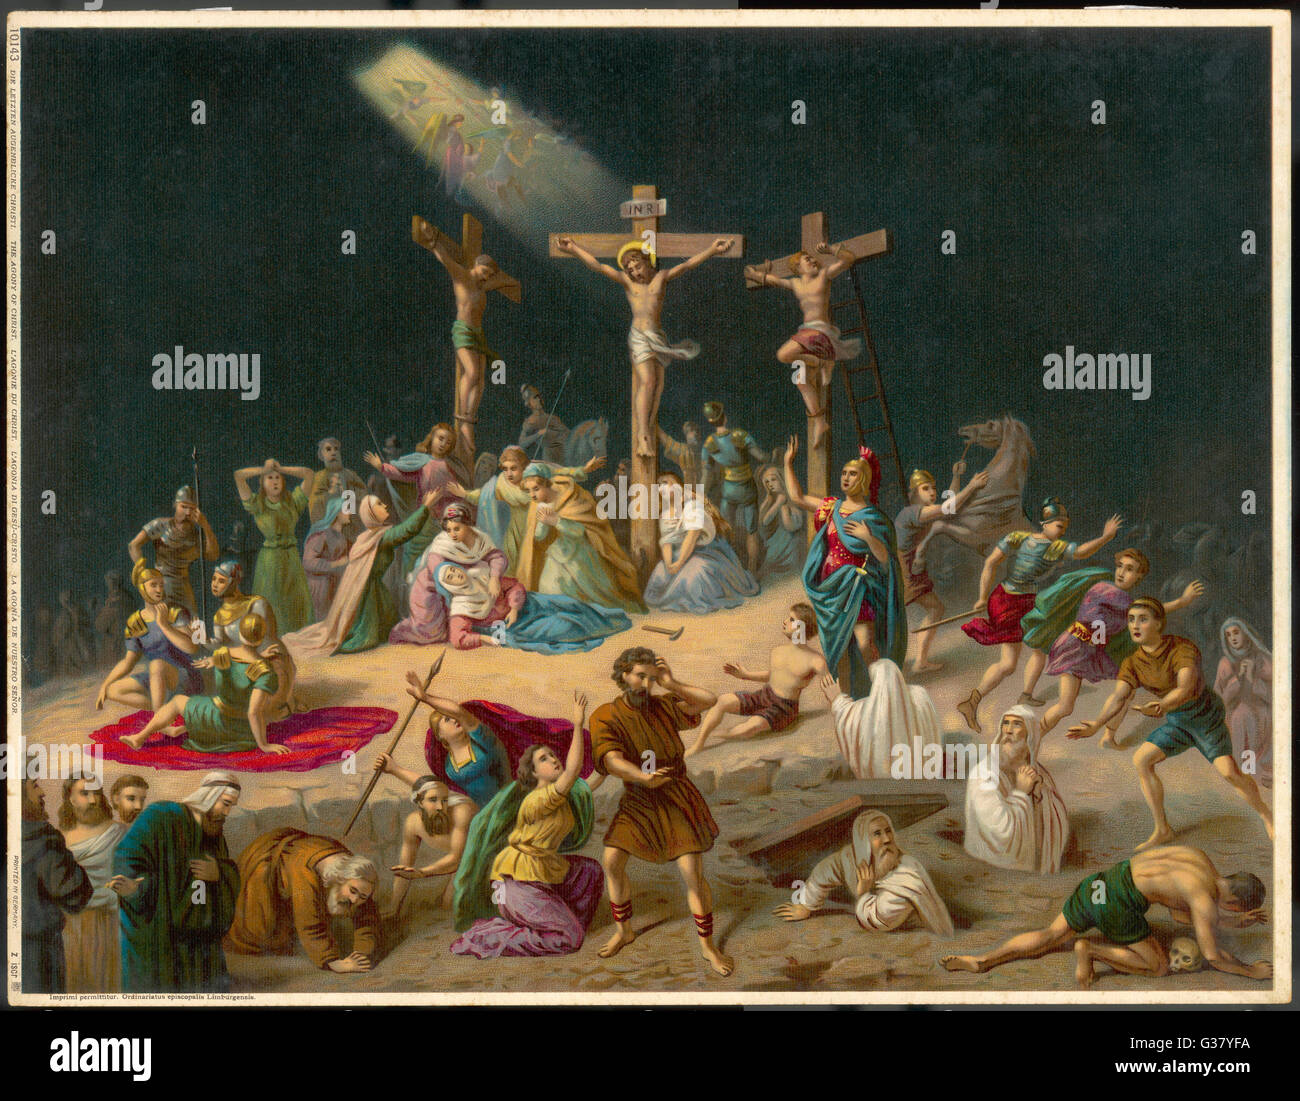 The crucifixion of Jesus enables the resurrection of the dead. - Stock Image